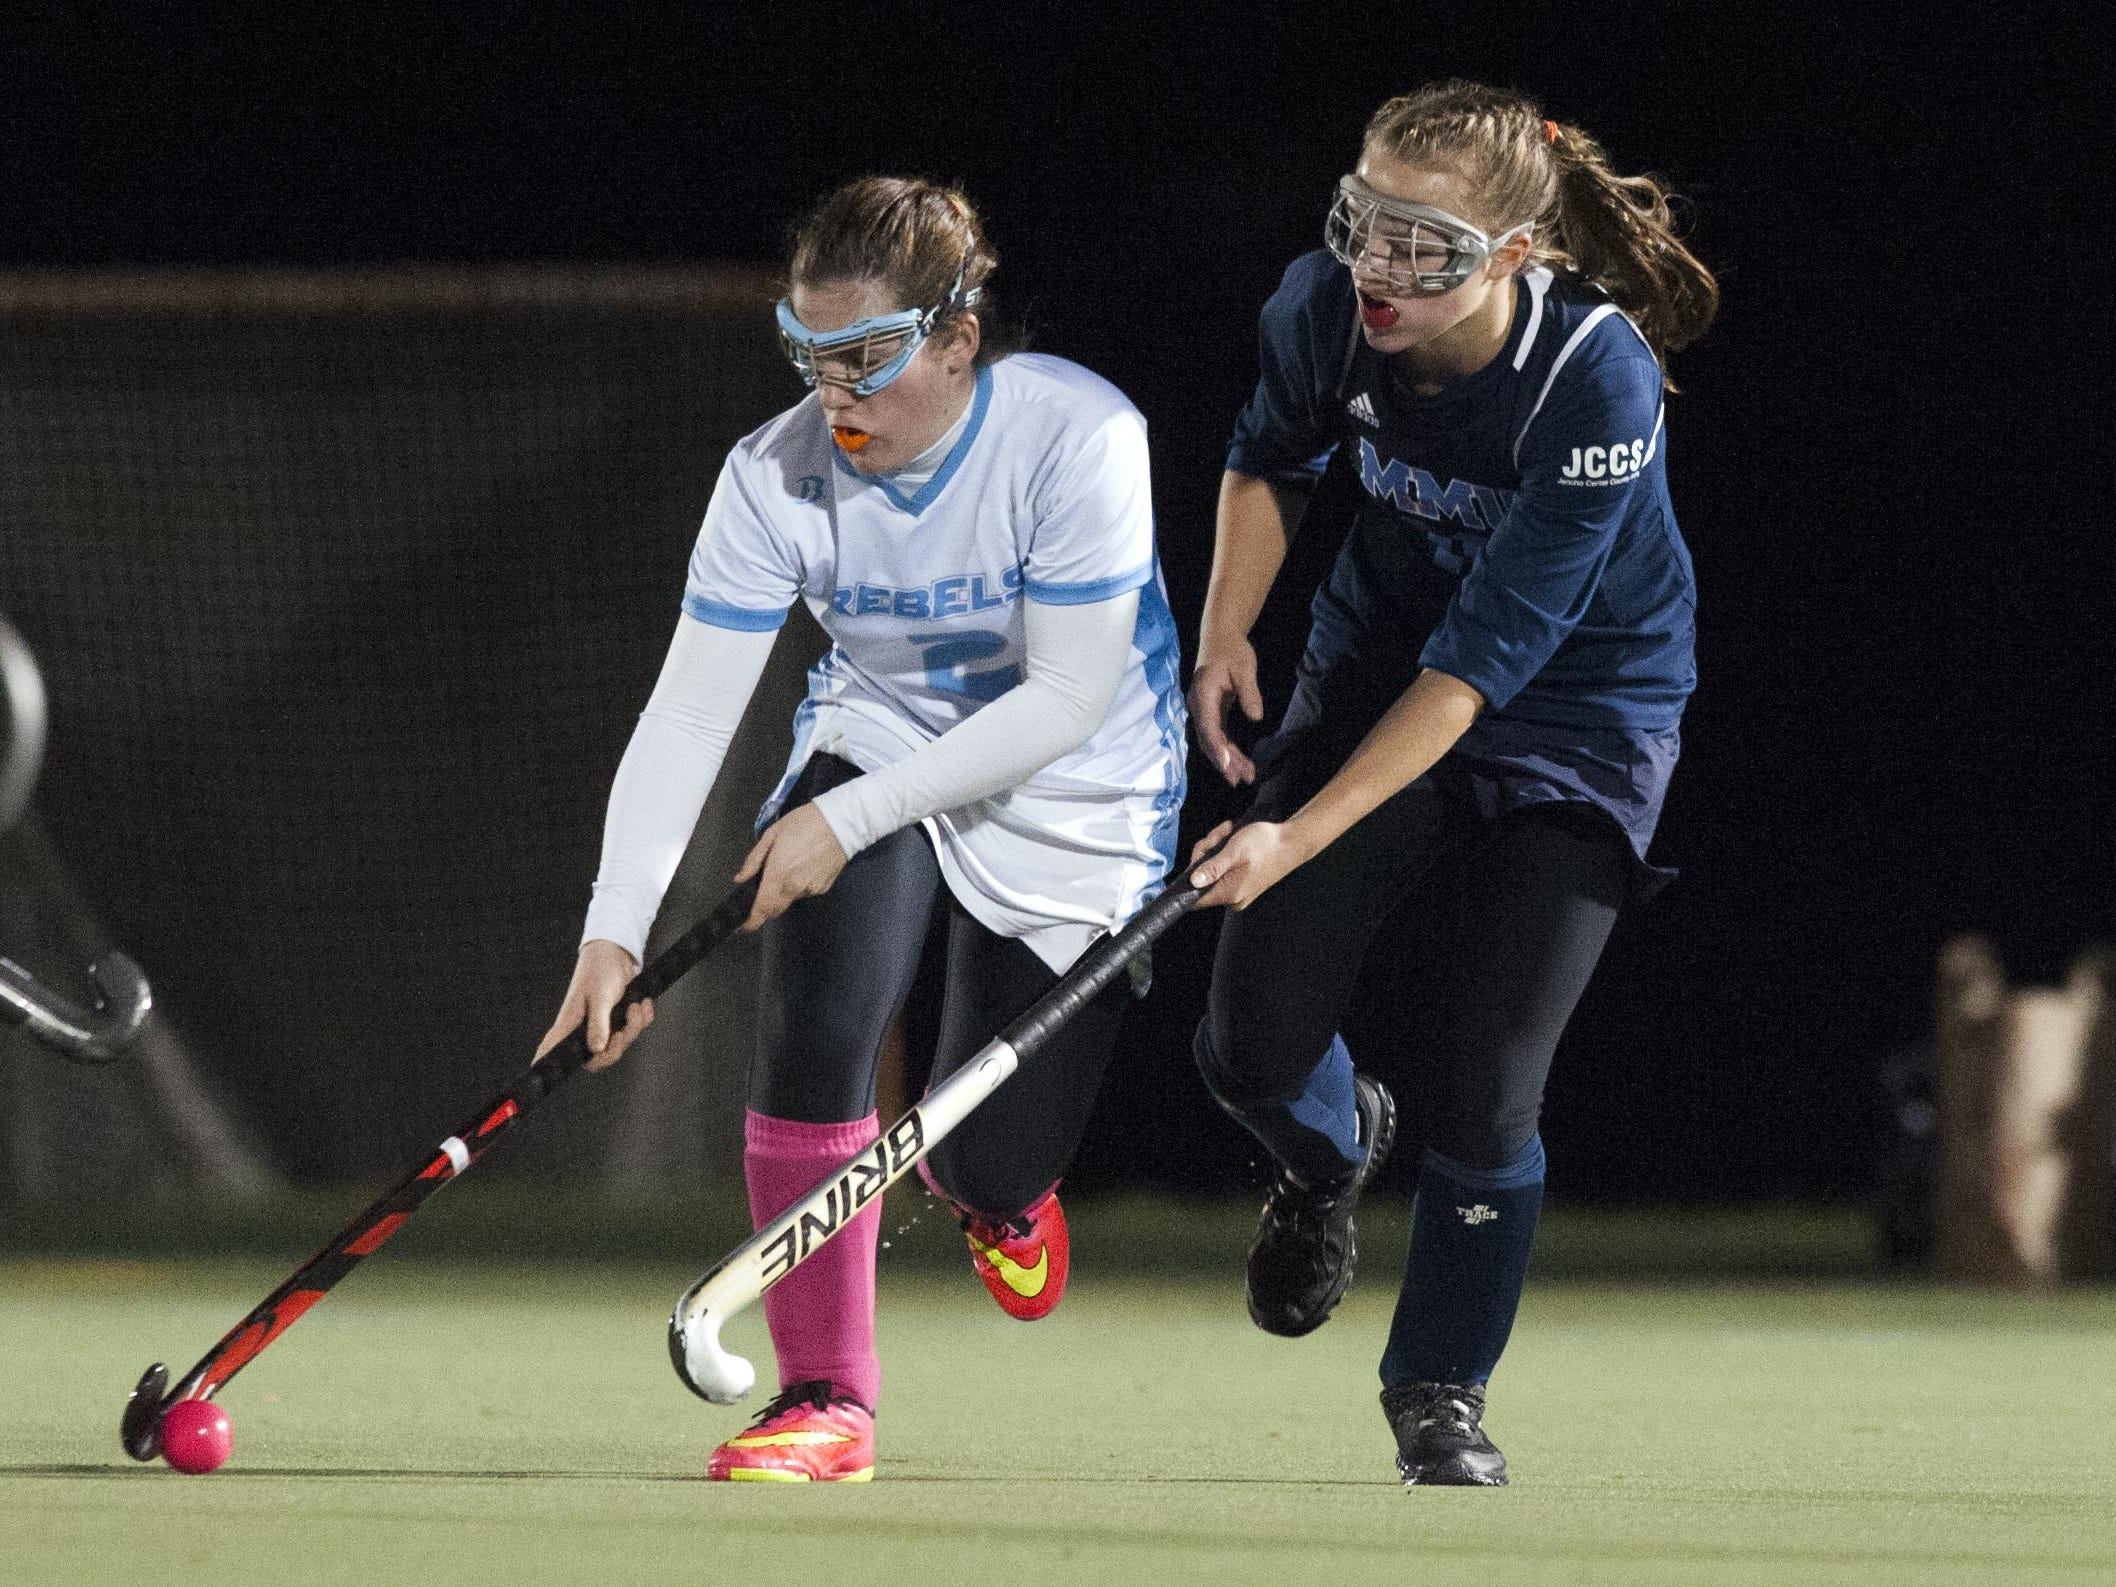 South Burlington's Kate Hall (2) runs past MMU's Ginny Churchill (11) during a Division I high school field hockey semifinal game at Middlebury College.